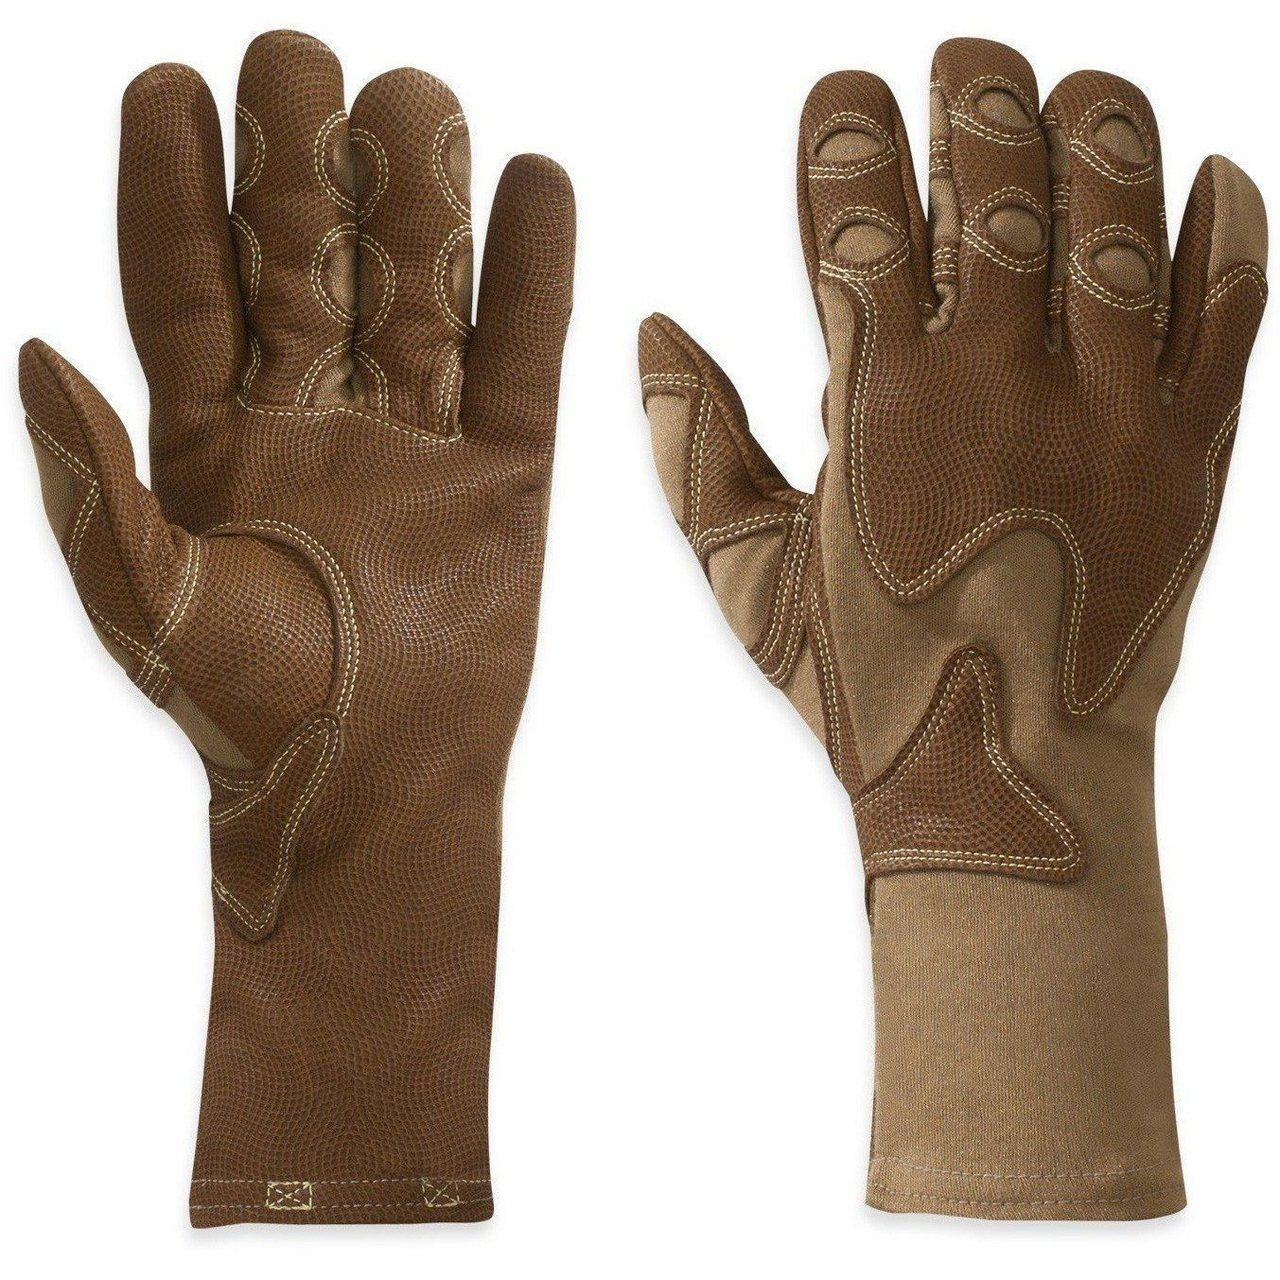 Outdoor Research Overlord Guantes Coyote Marrón Hecho en USA